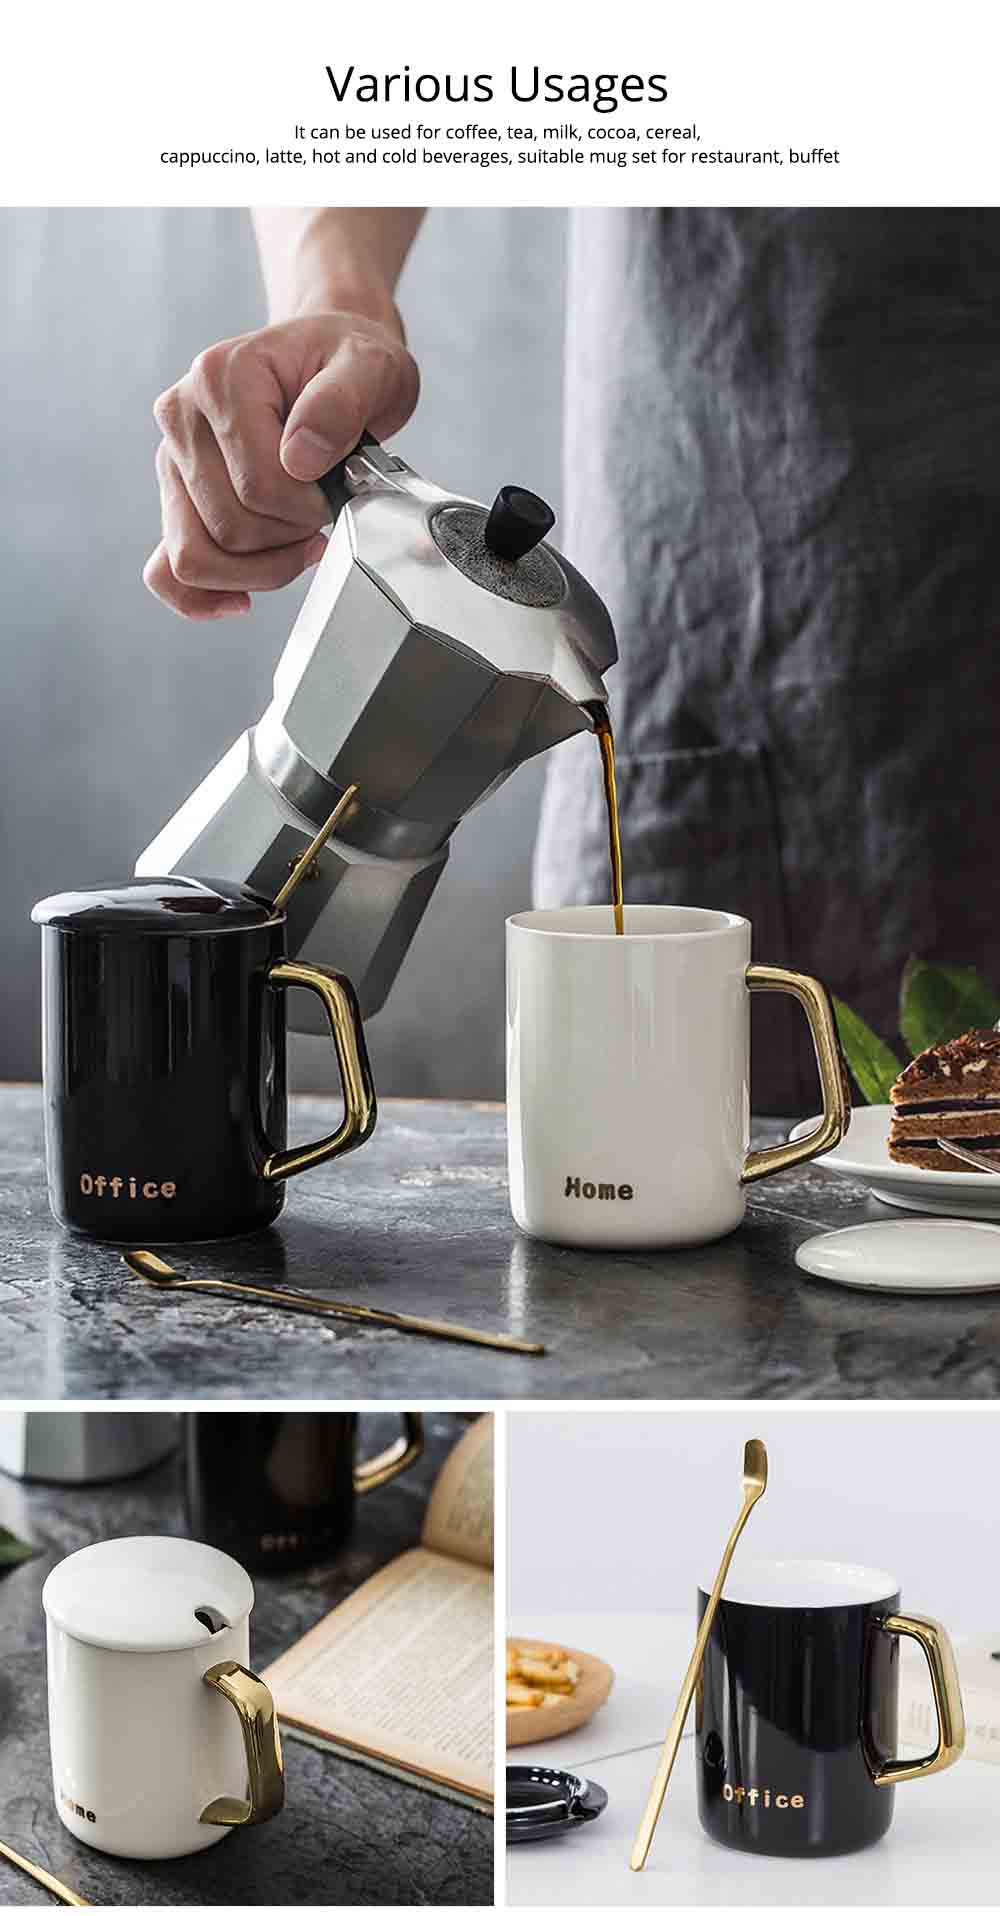 Black and White Ceramic Coffee Mug with Gold Plated Handle 2